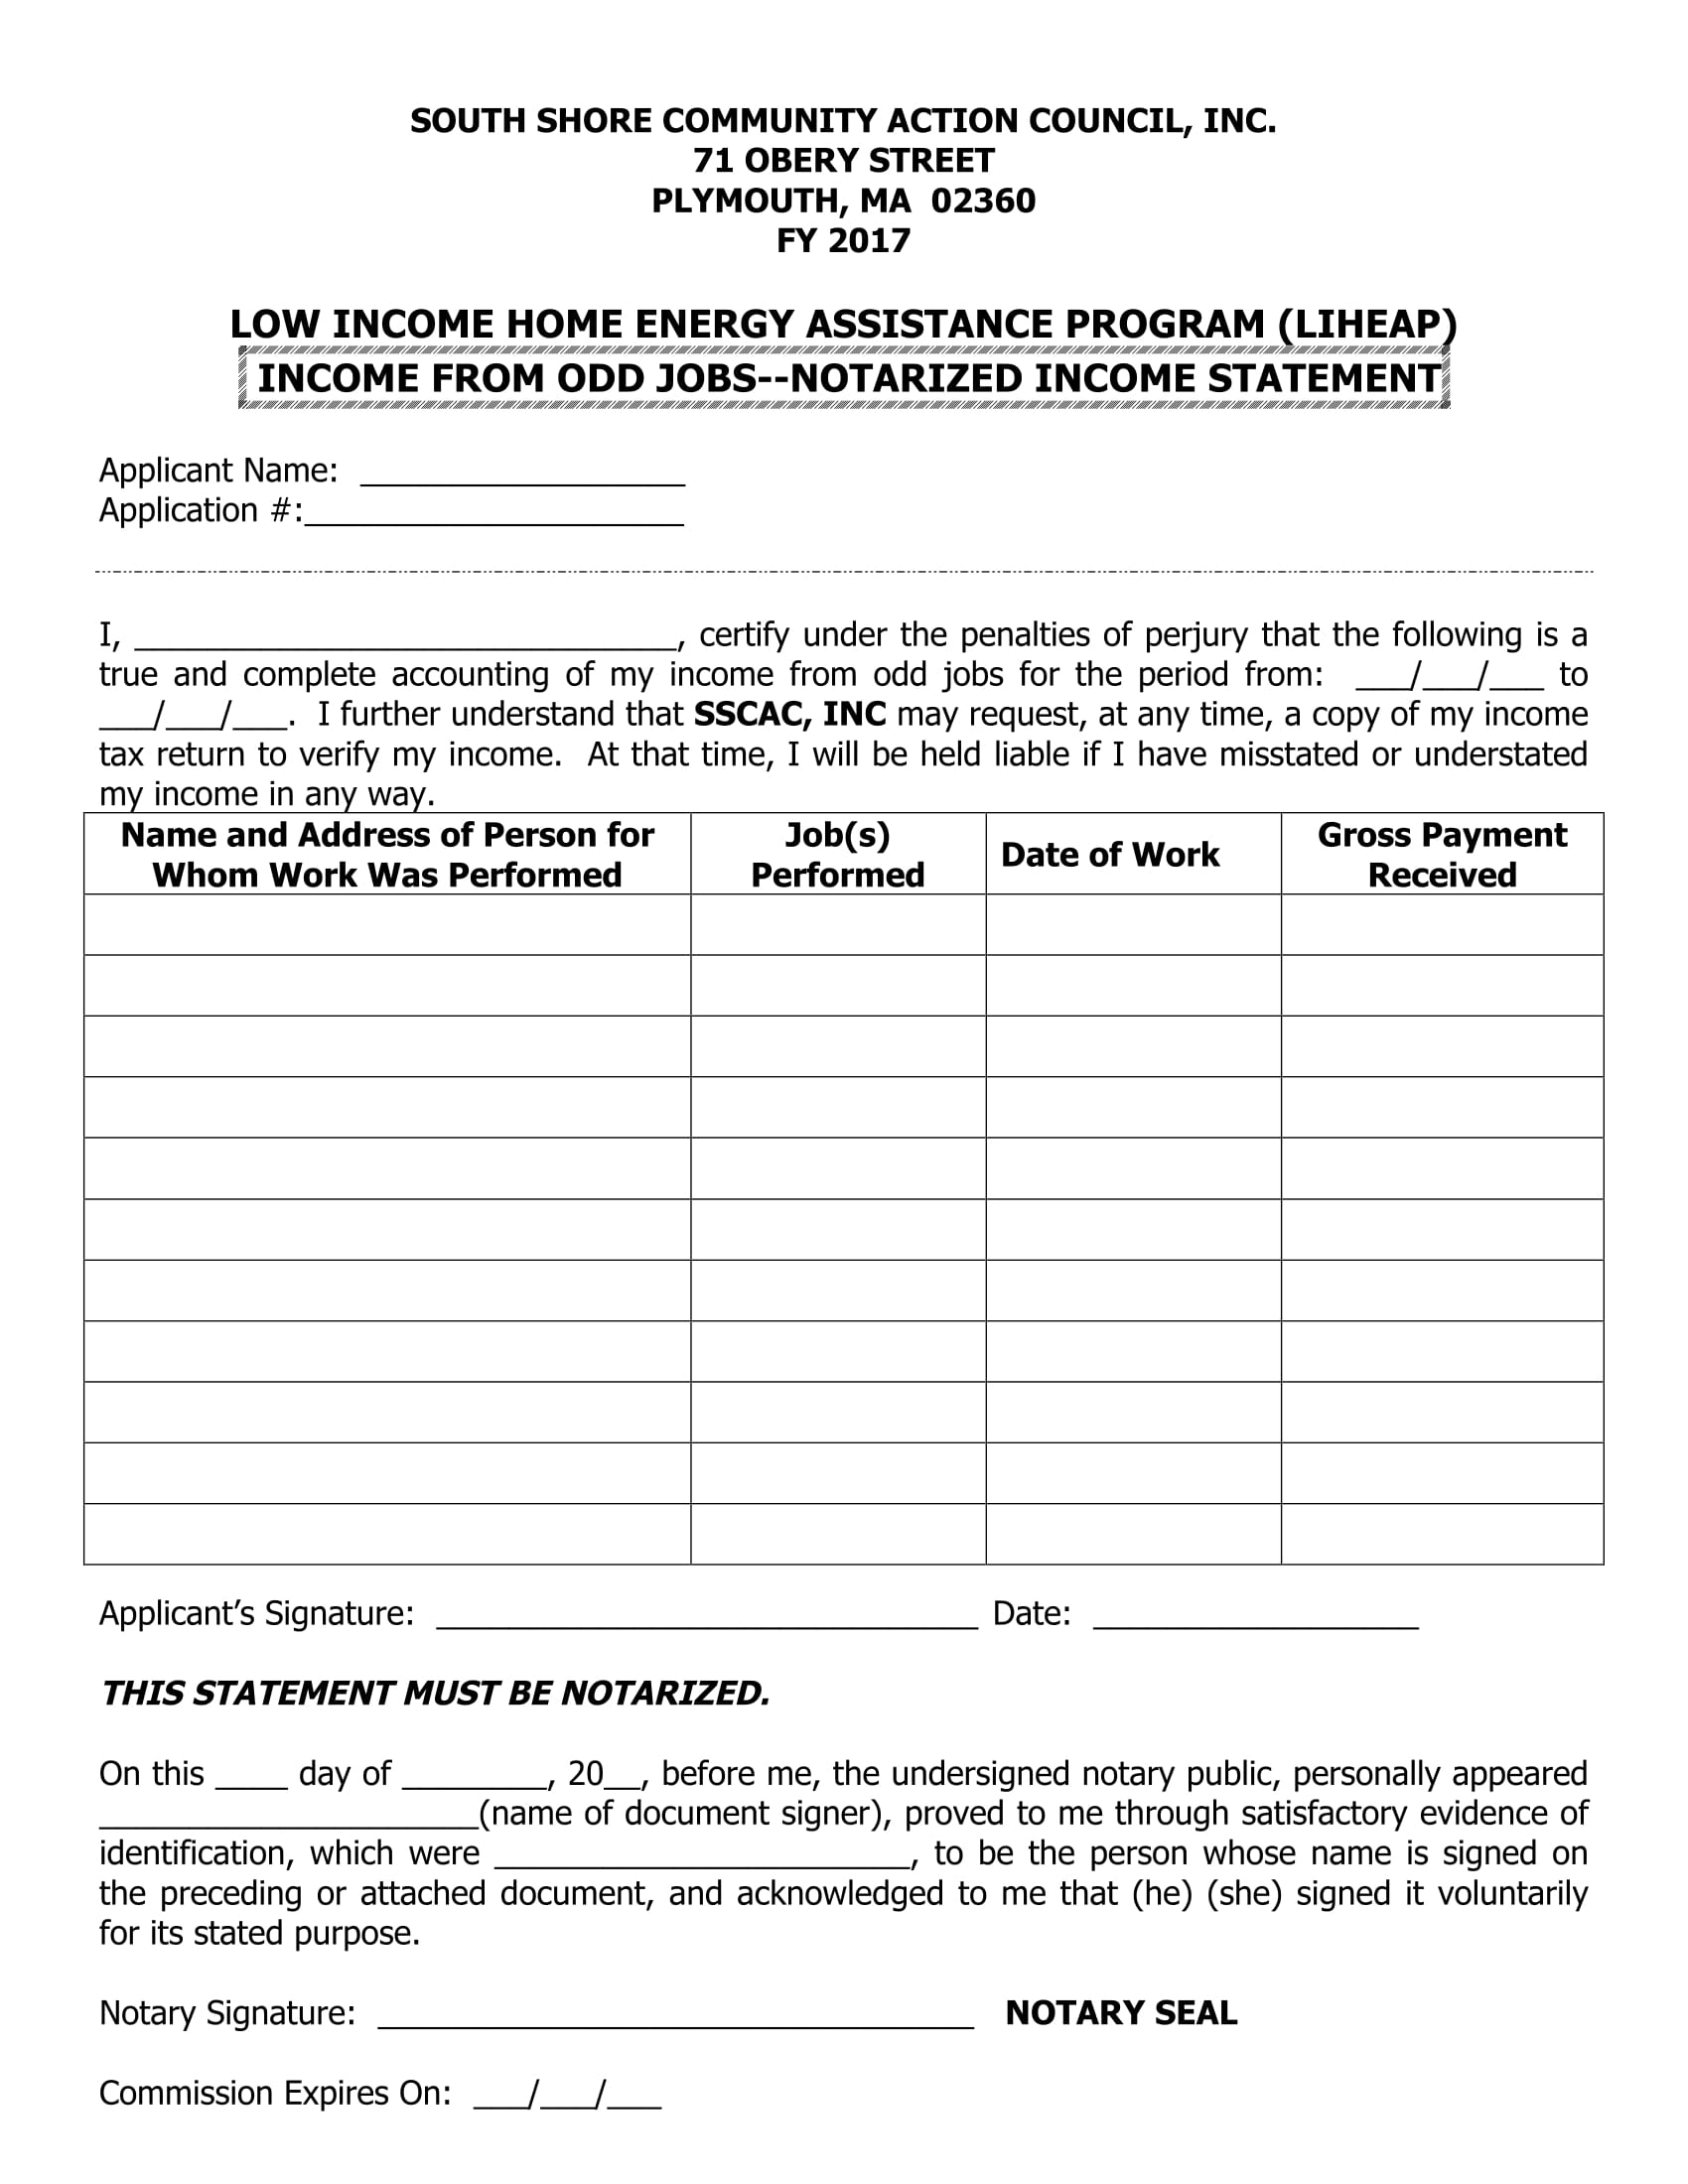 notarized income statement form 1